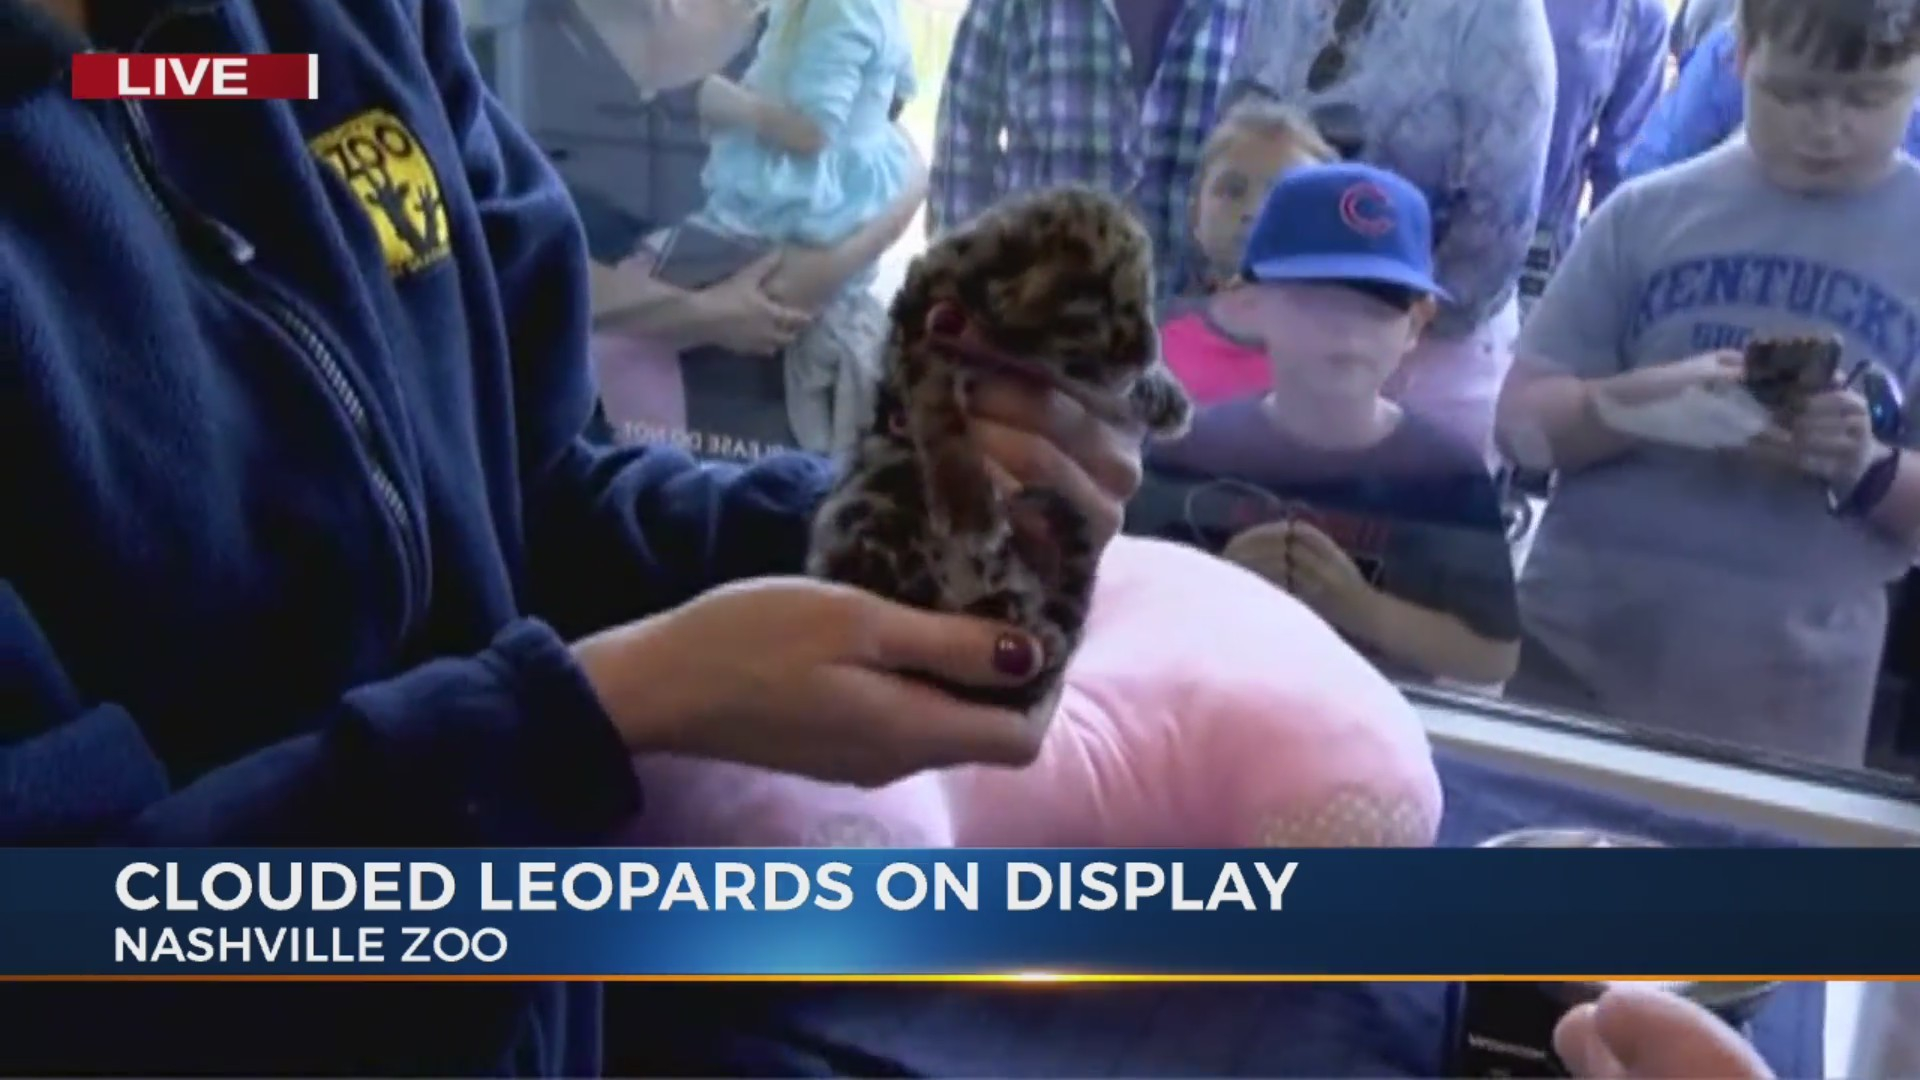 Clouded leopard cubs on display at Nashville Zoo